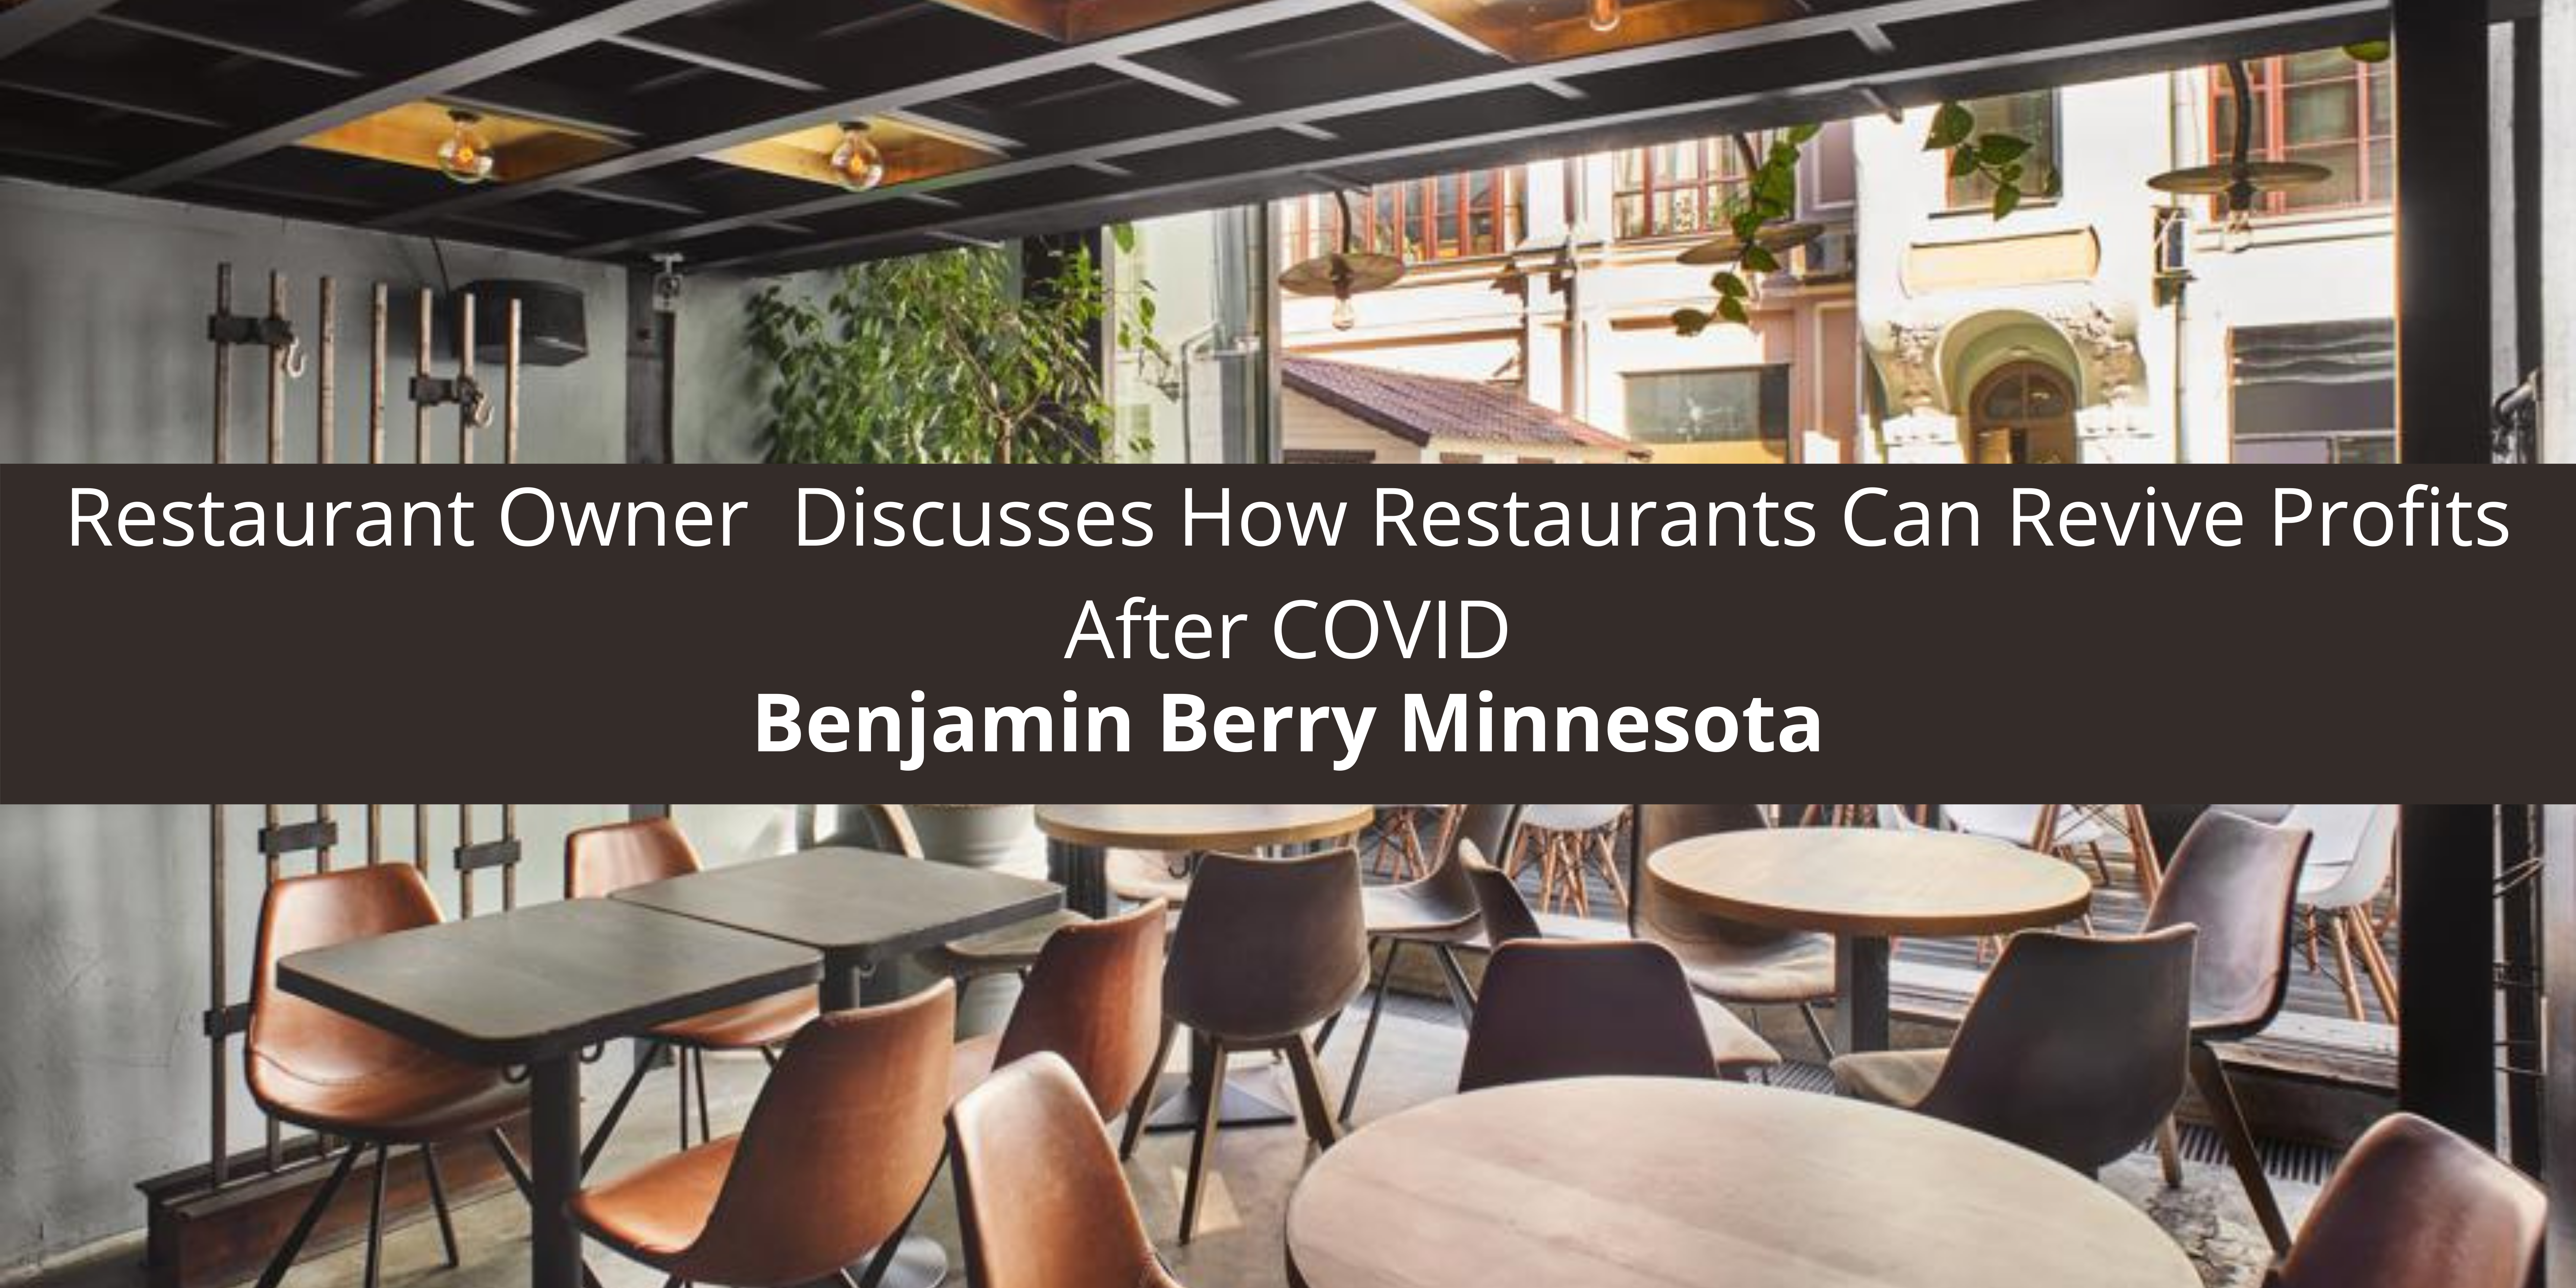 Restaurant Owner Benjamin Berry Minnesota Discusses How Restaurants Can Revive Profits After COVID